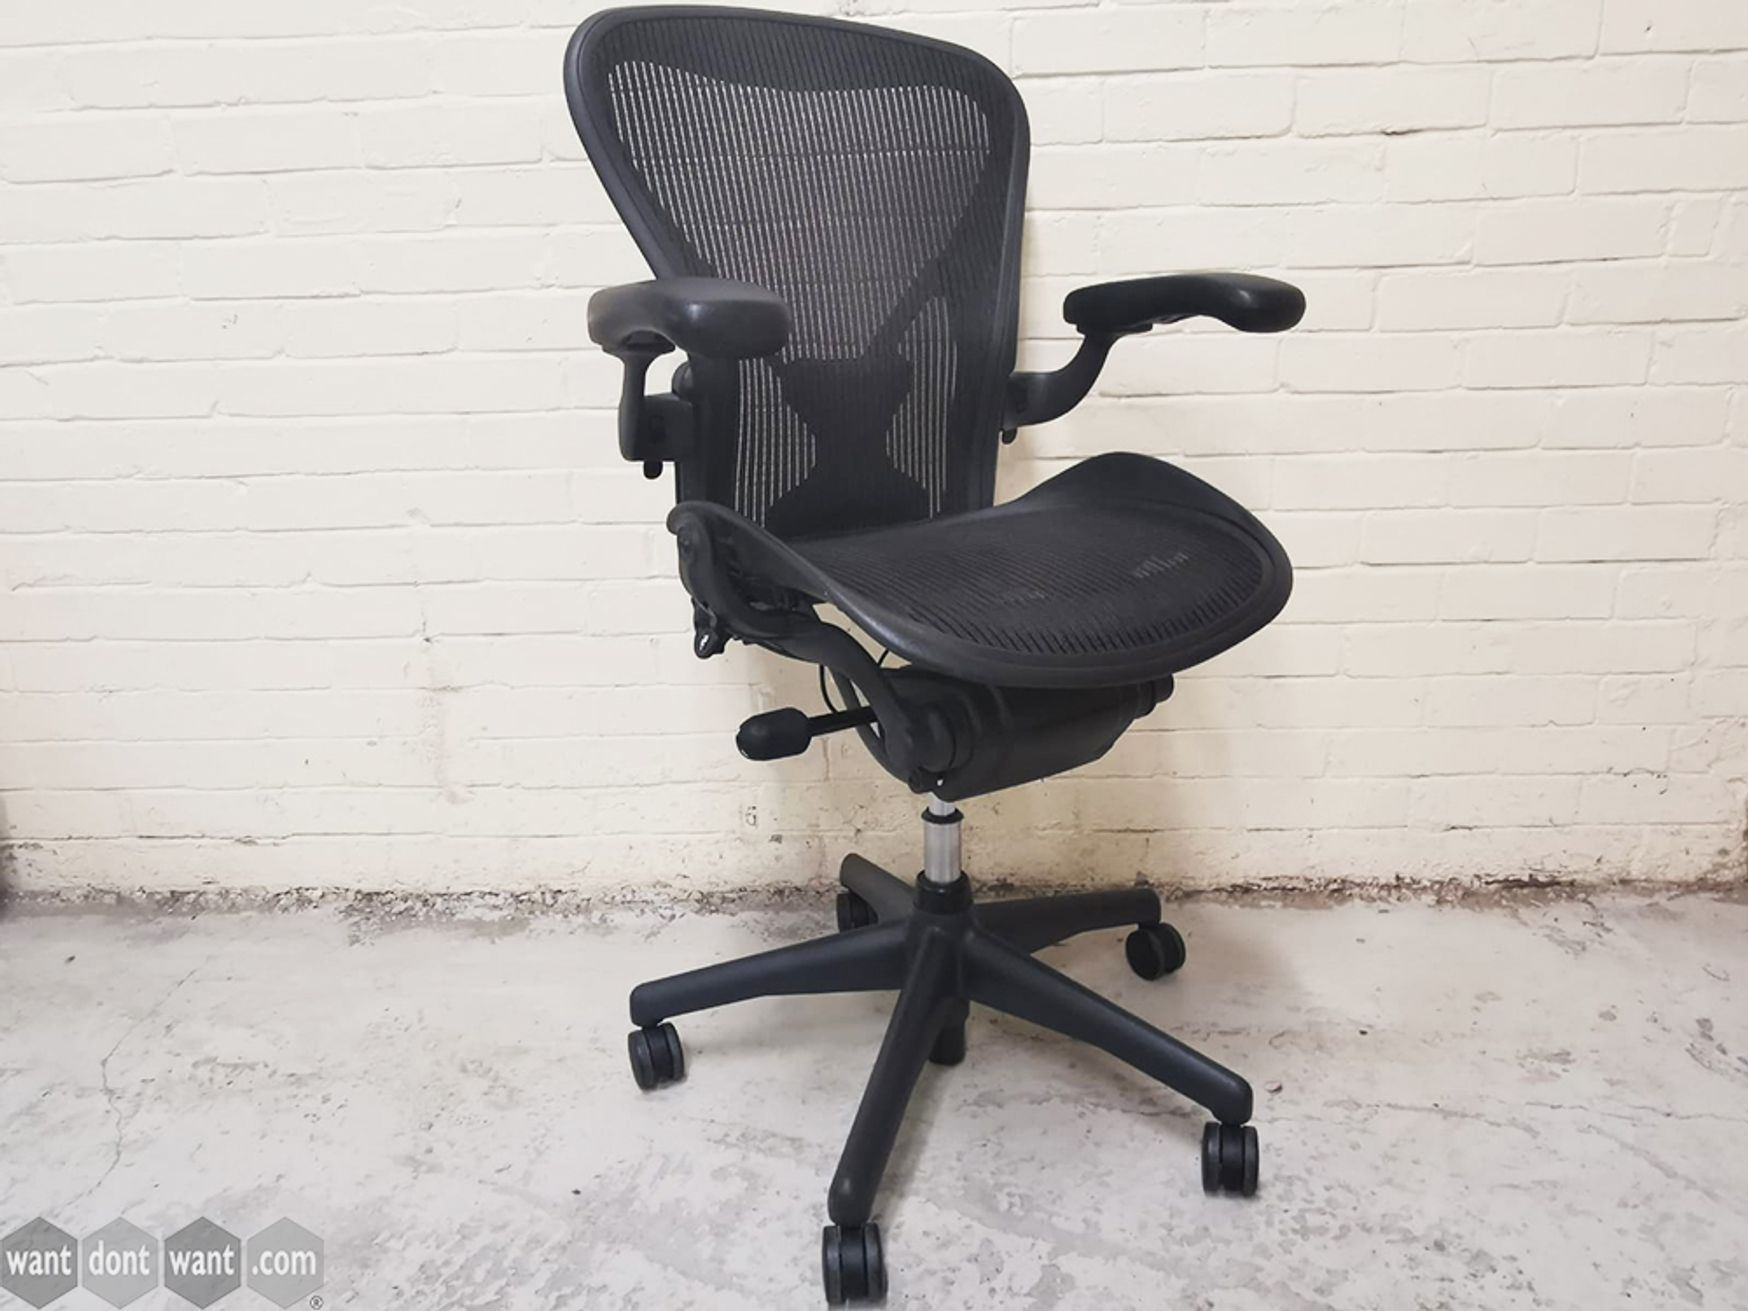 Used Size B Herman Miller Aeron Chairs in Graphite with PostureFit Lumbar Support